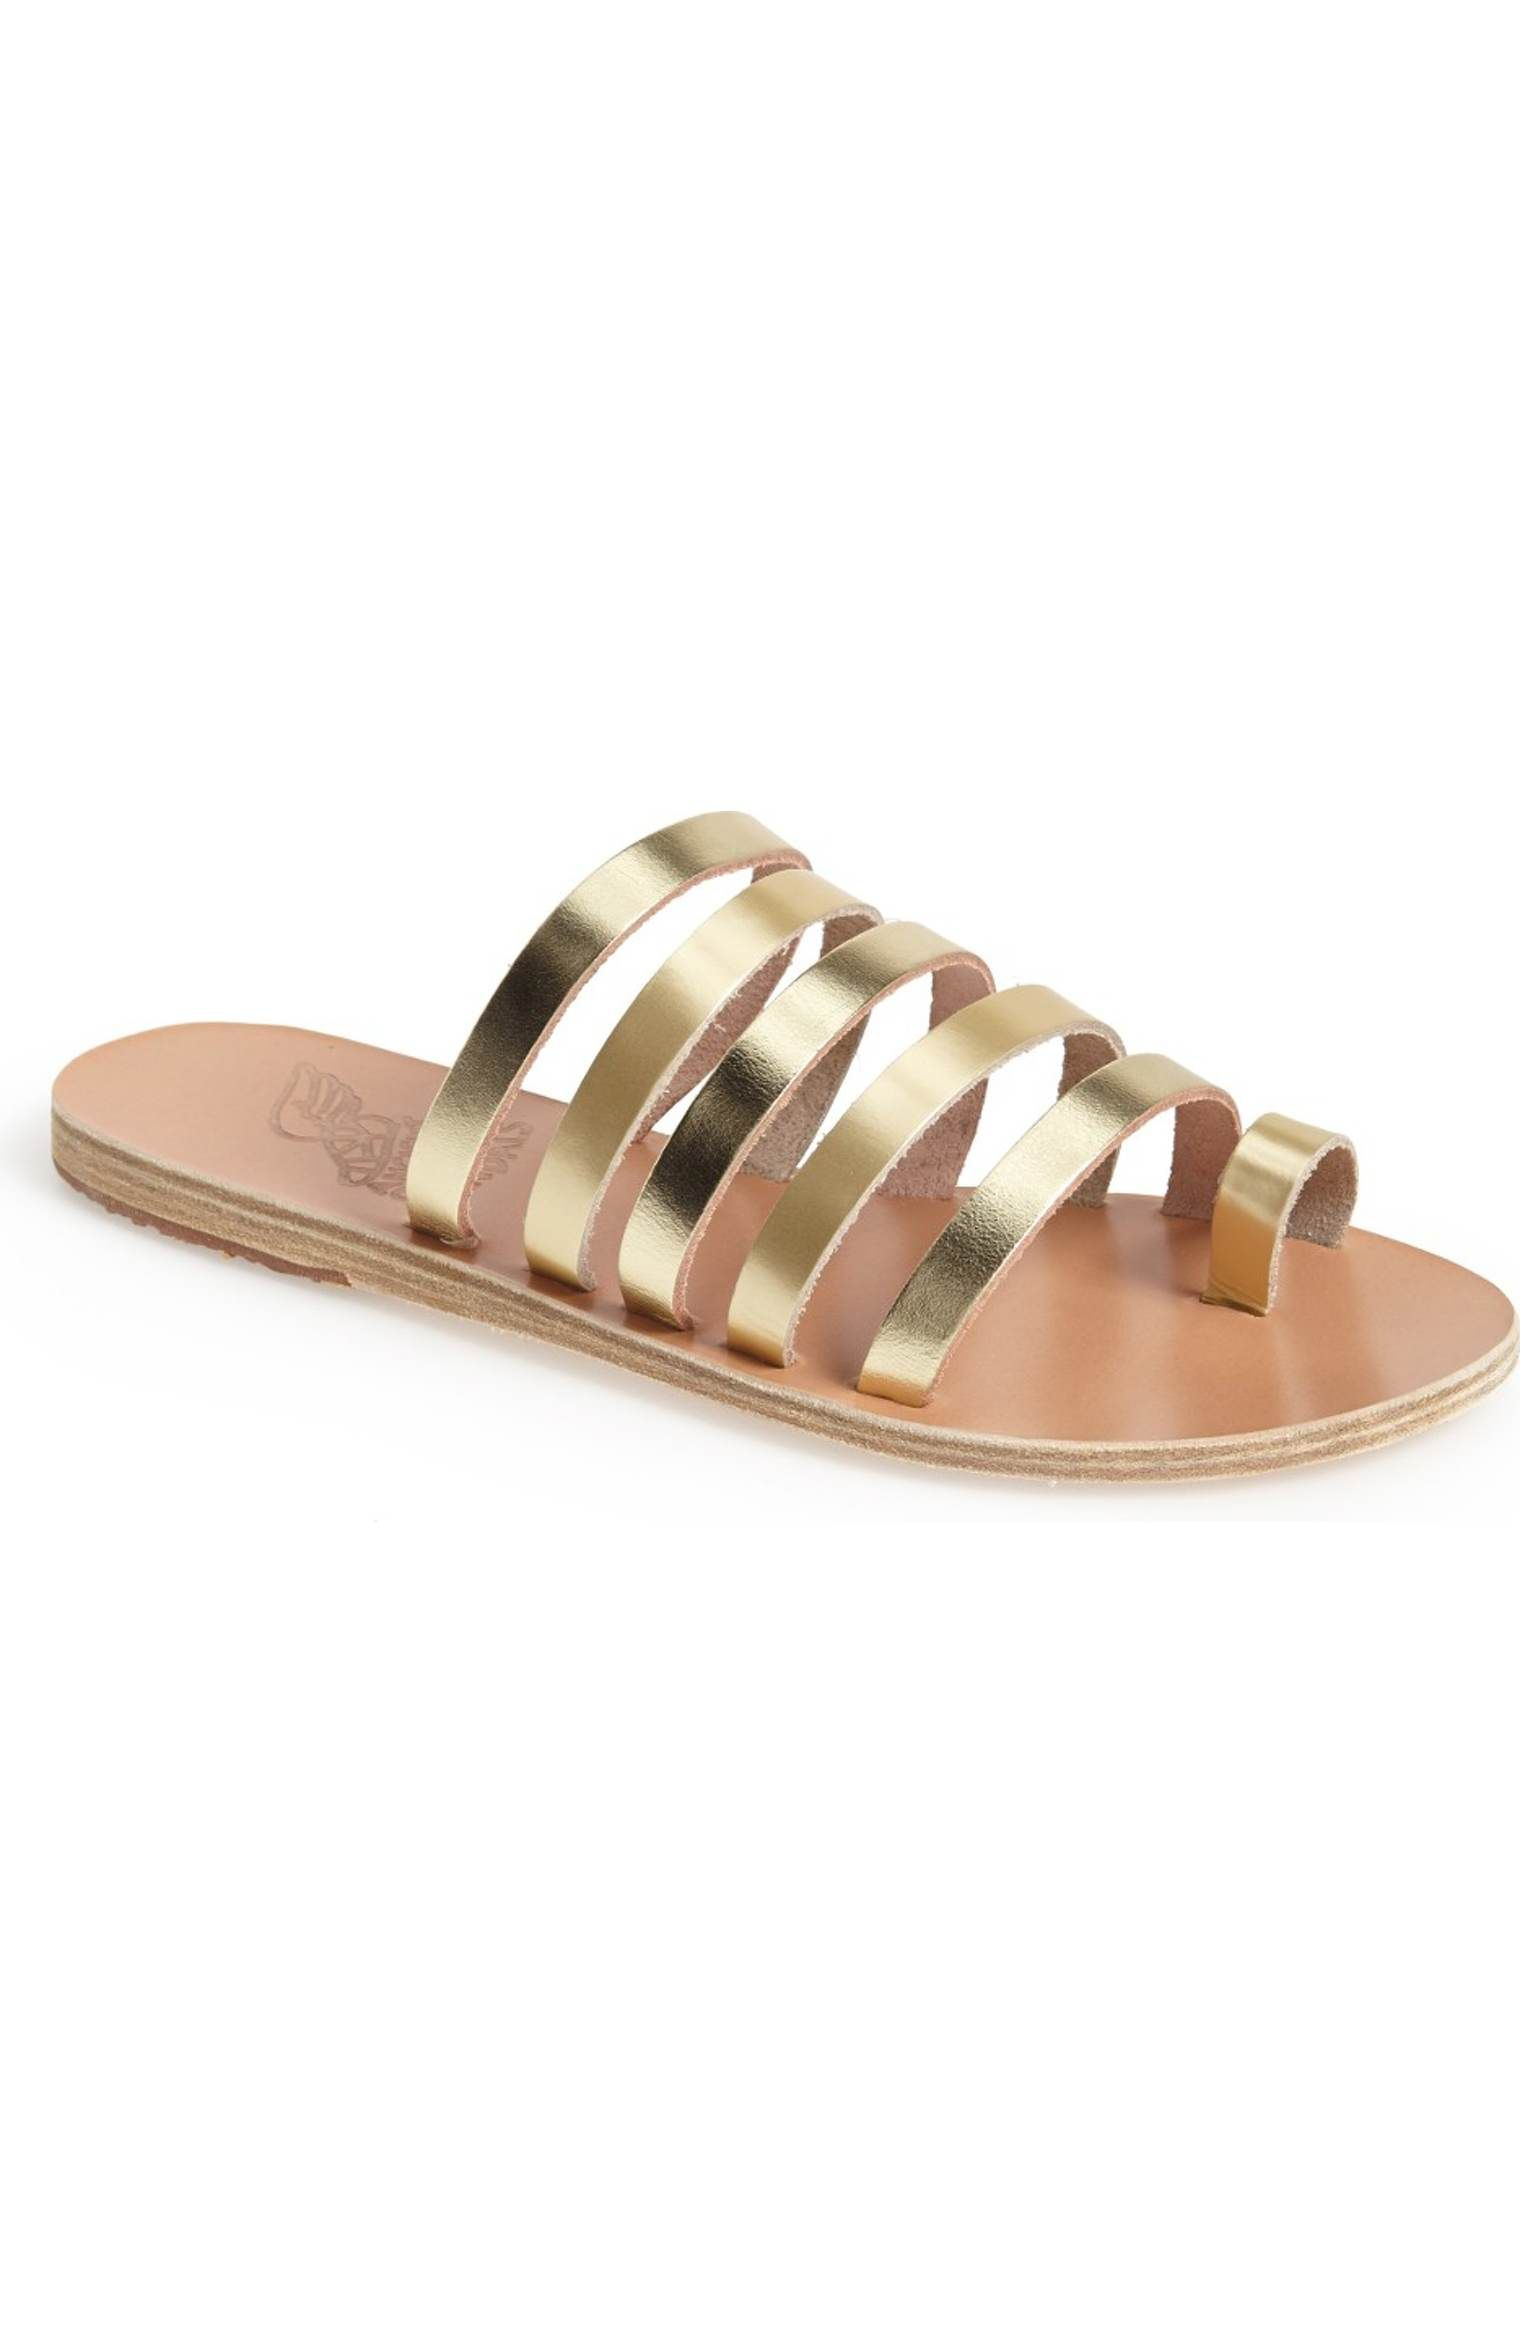 Ancient Greek Sandals Women's Niki Slide Sandal 6G9kkb5O